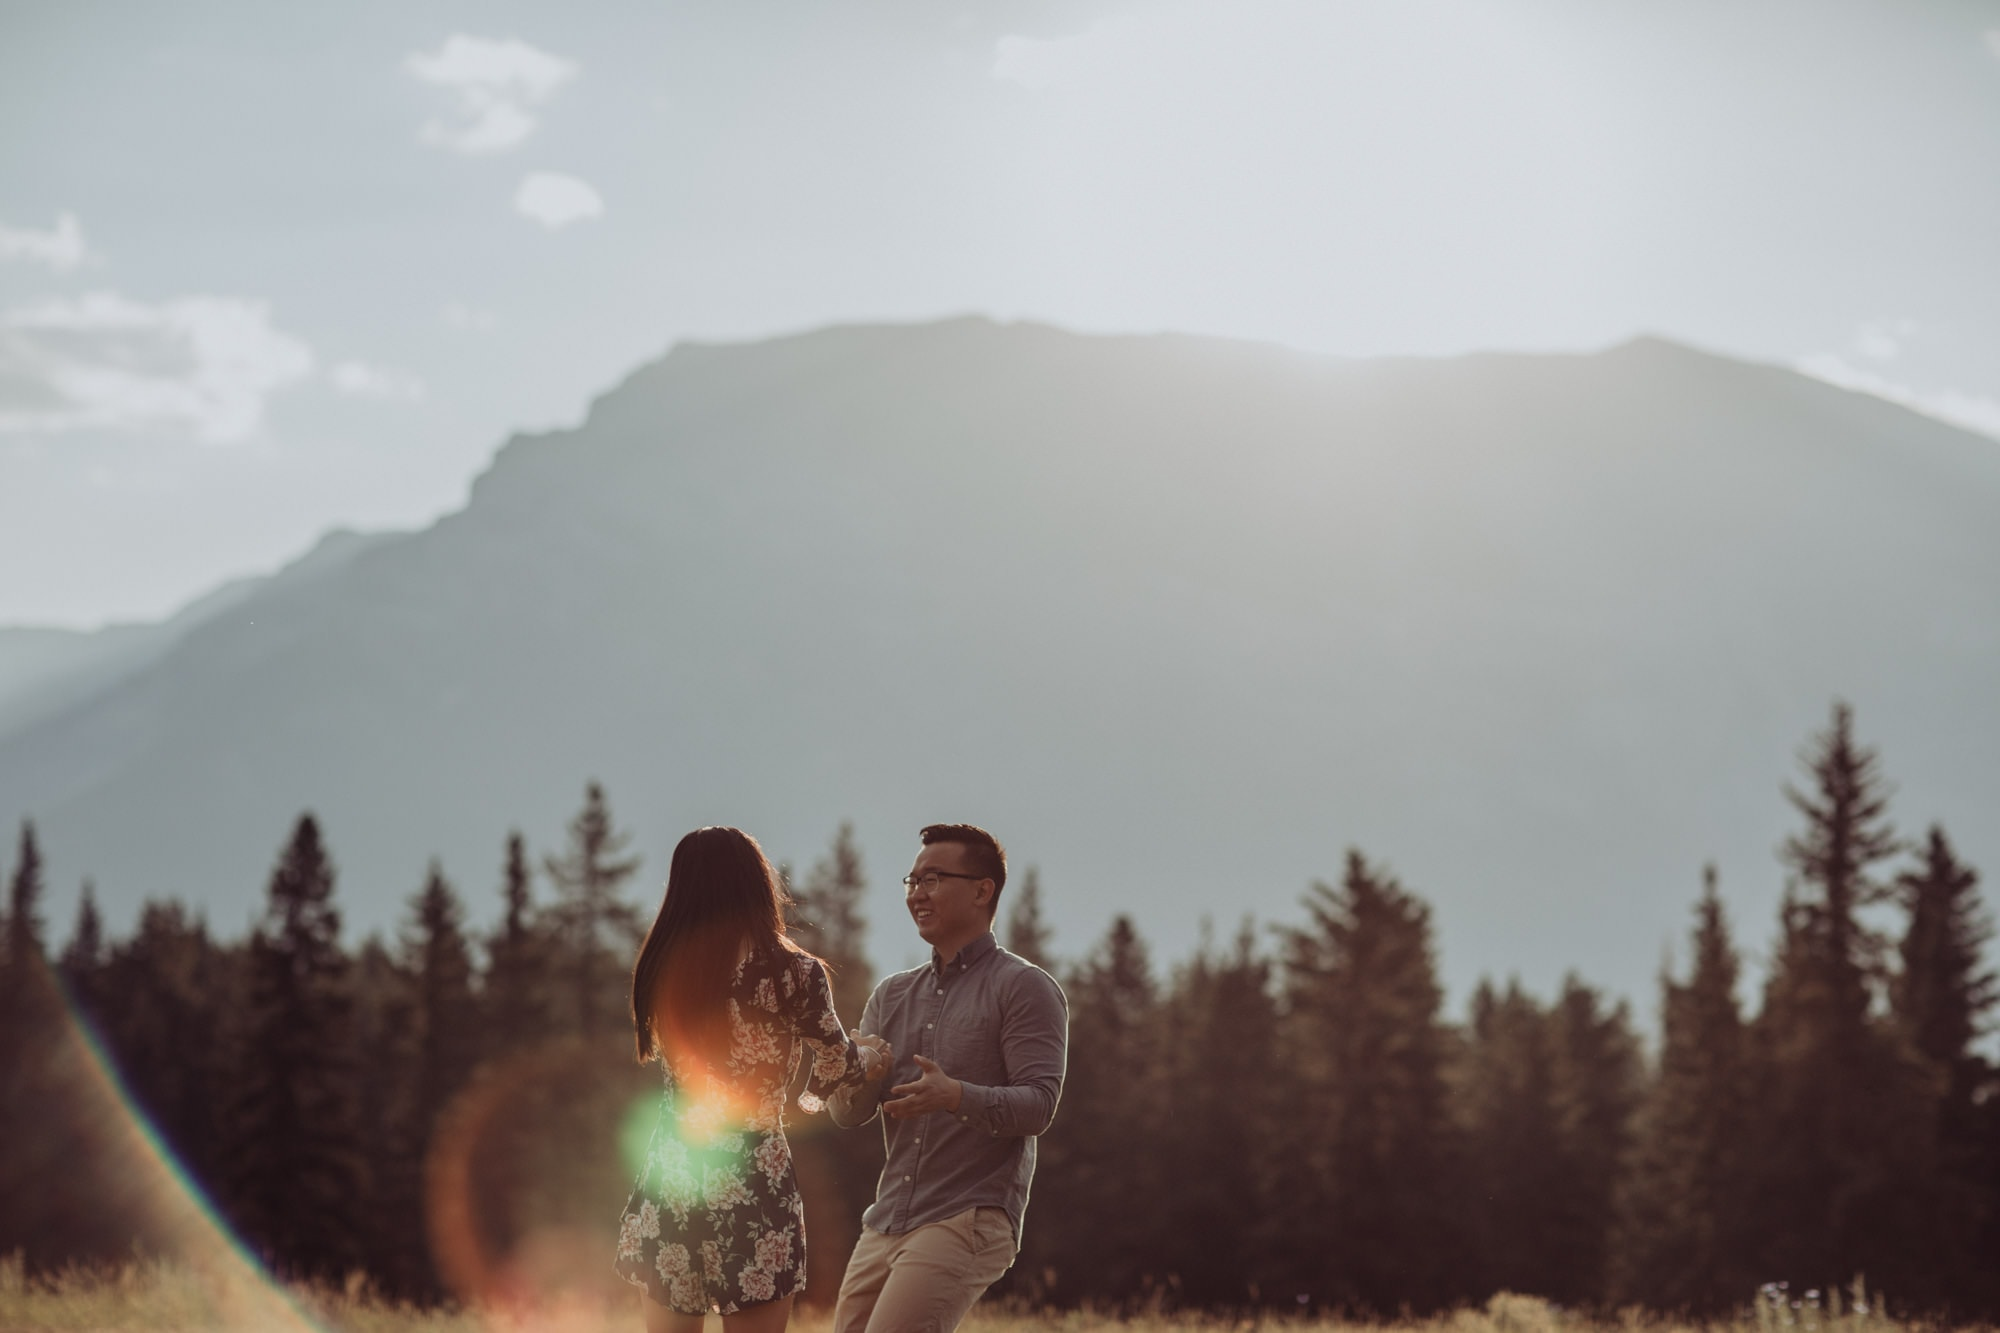 Banff Montreal Wedding Canmore Engagement Quarry Lake Montreal Traveling Destination Photographer Brent Calis Field Mountains Back Light Flare